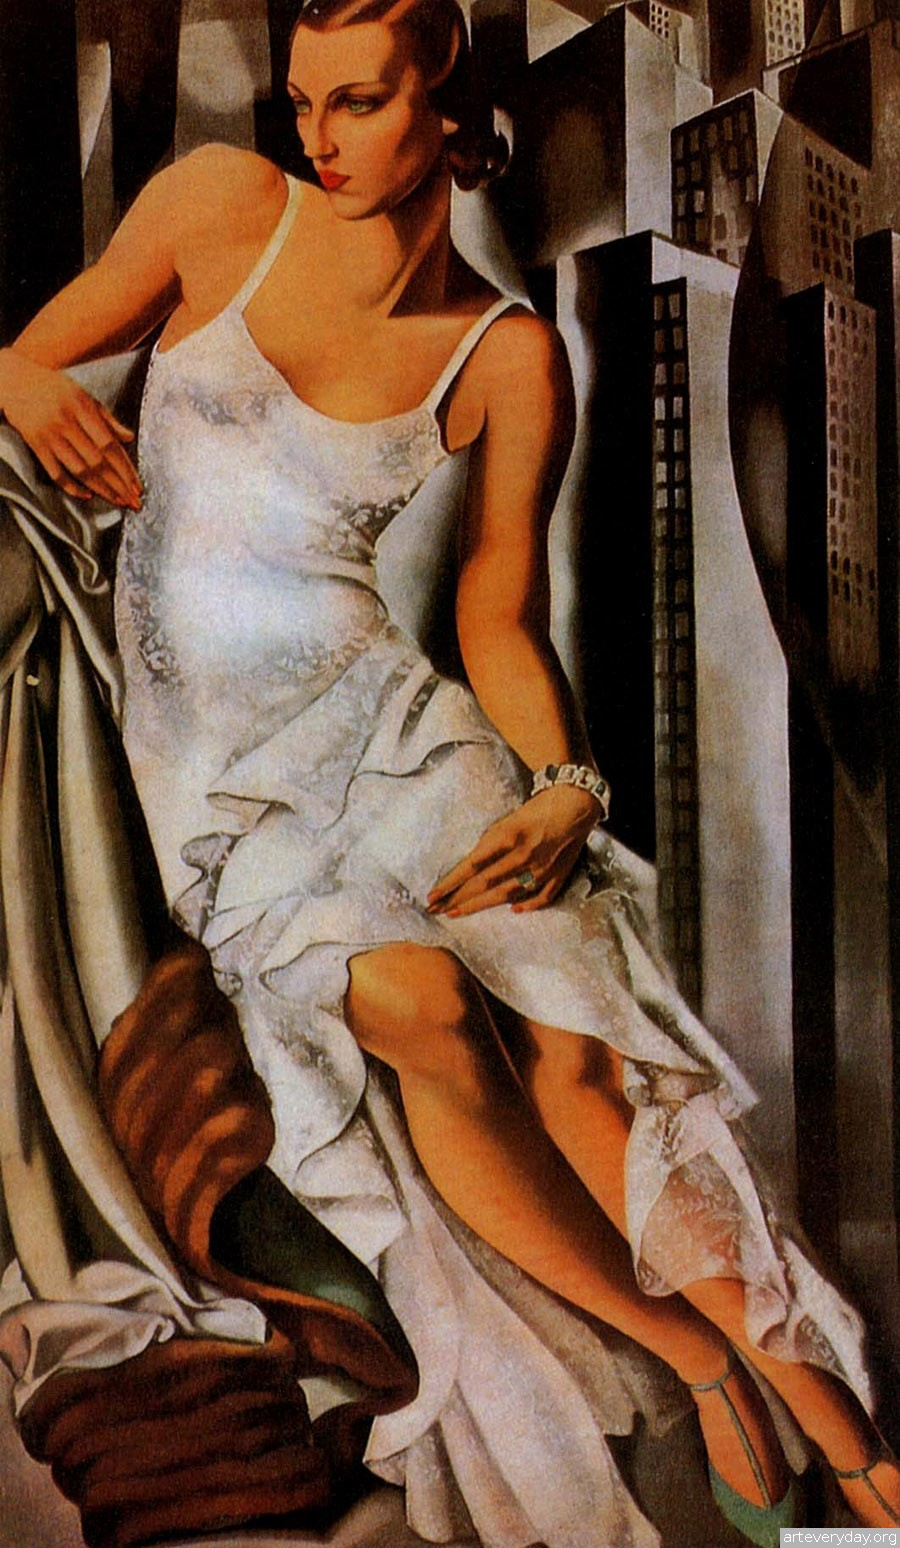 tamara de lempicka on pinterest american art art deco. Black Bedroom Furniture Sets. Home Design Ideas